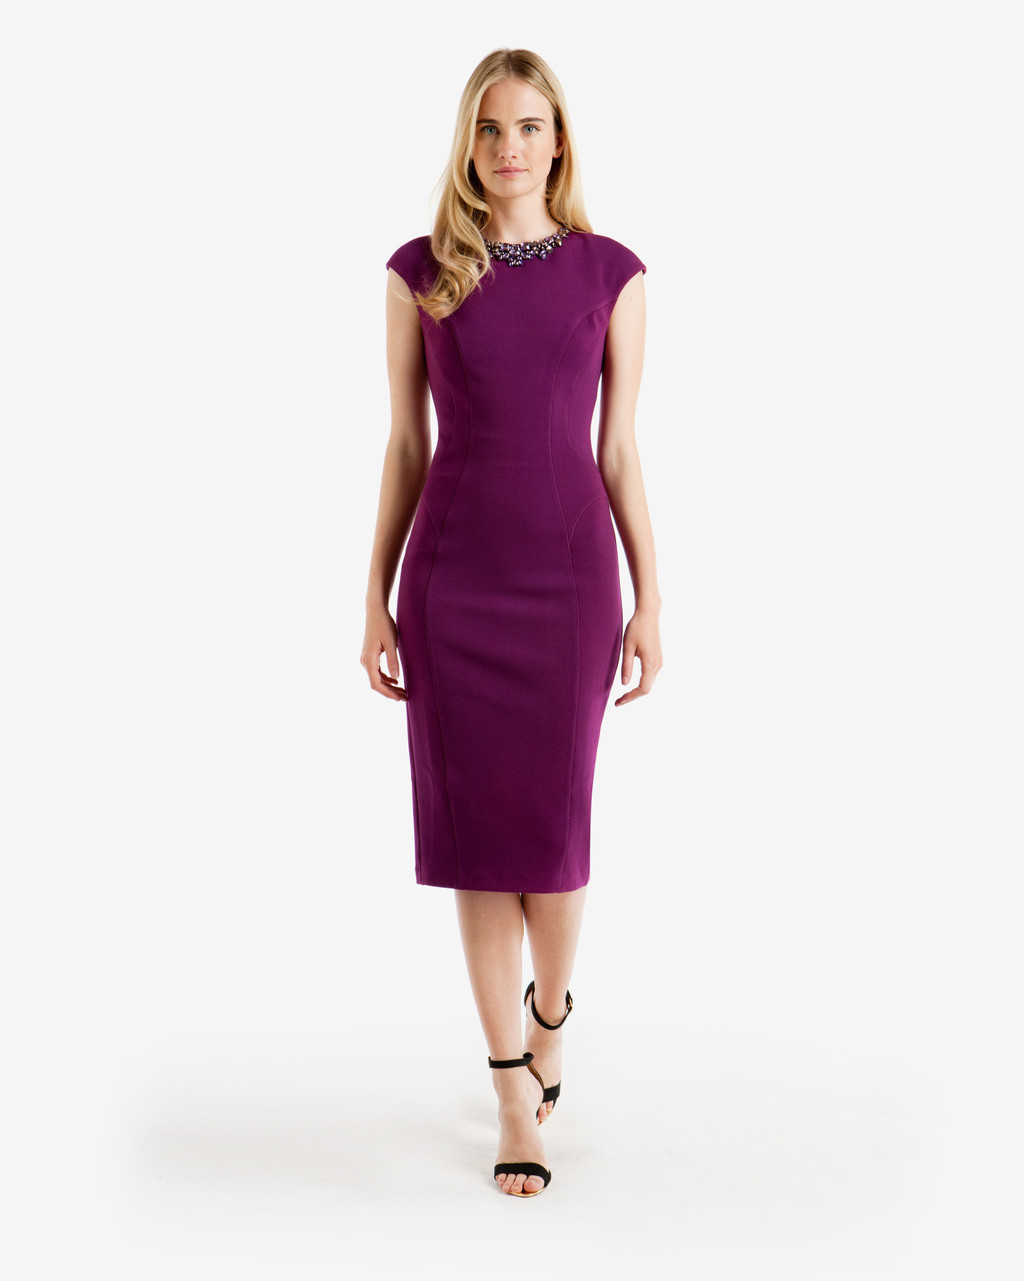 Embellished Midi Dress Grape - length: below the knee; sleeve style: capped; fit: tight; pattern: plain; style: bodycon; predominant colour: purple; occasions: evening; fibres: polyester/polyamide - stretch; neckline: crew; sleeve length: short sleeve; texture group: jersey - clingy; pattern type: fabric; embellishment: beading; season: a/w 2016; wardrobe: event; embellishment location: bust